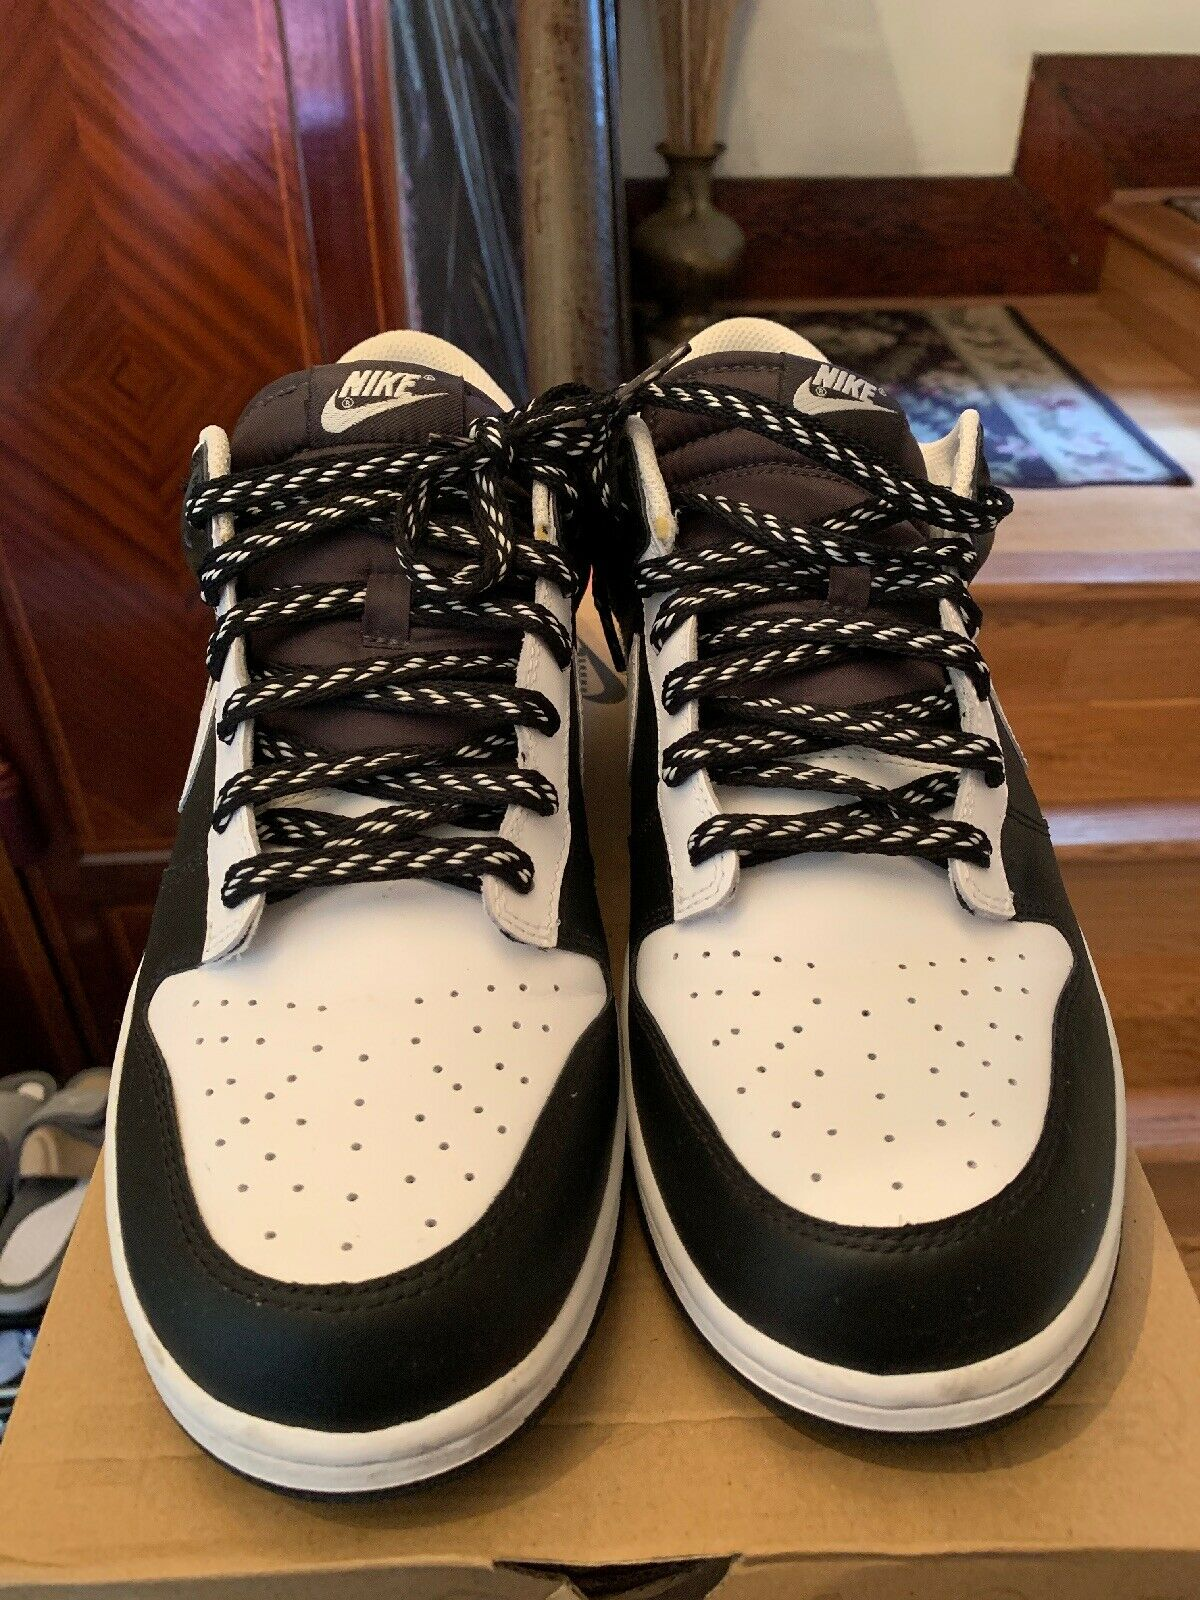 Nike Dunk Low Leather 2009 Black White 318019 101 Size 13